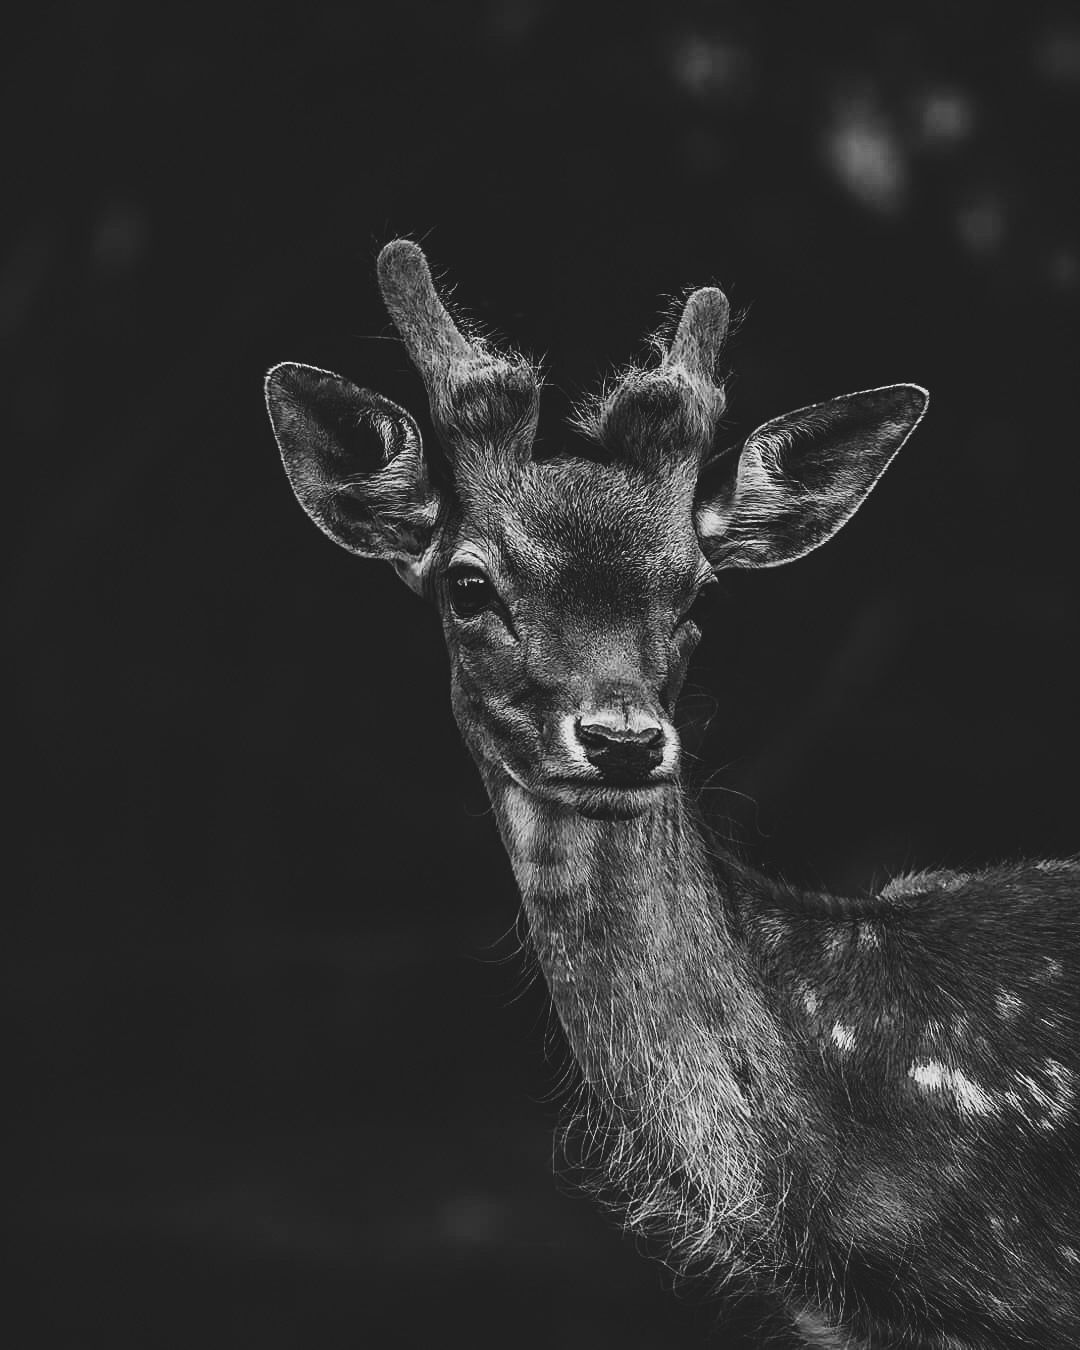 Astonishing black and white young male deer black and white